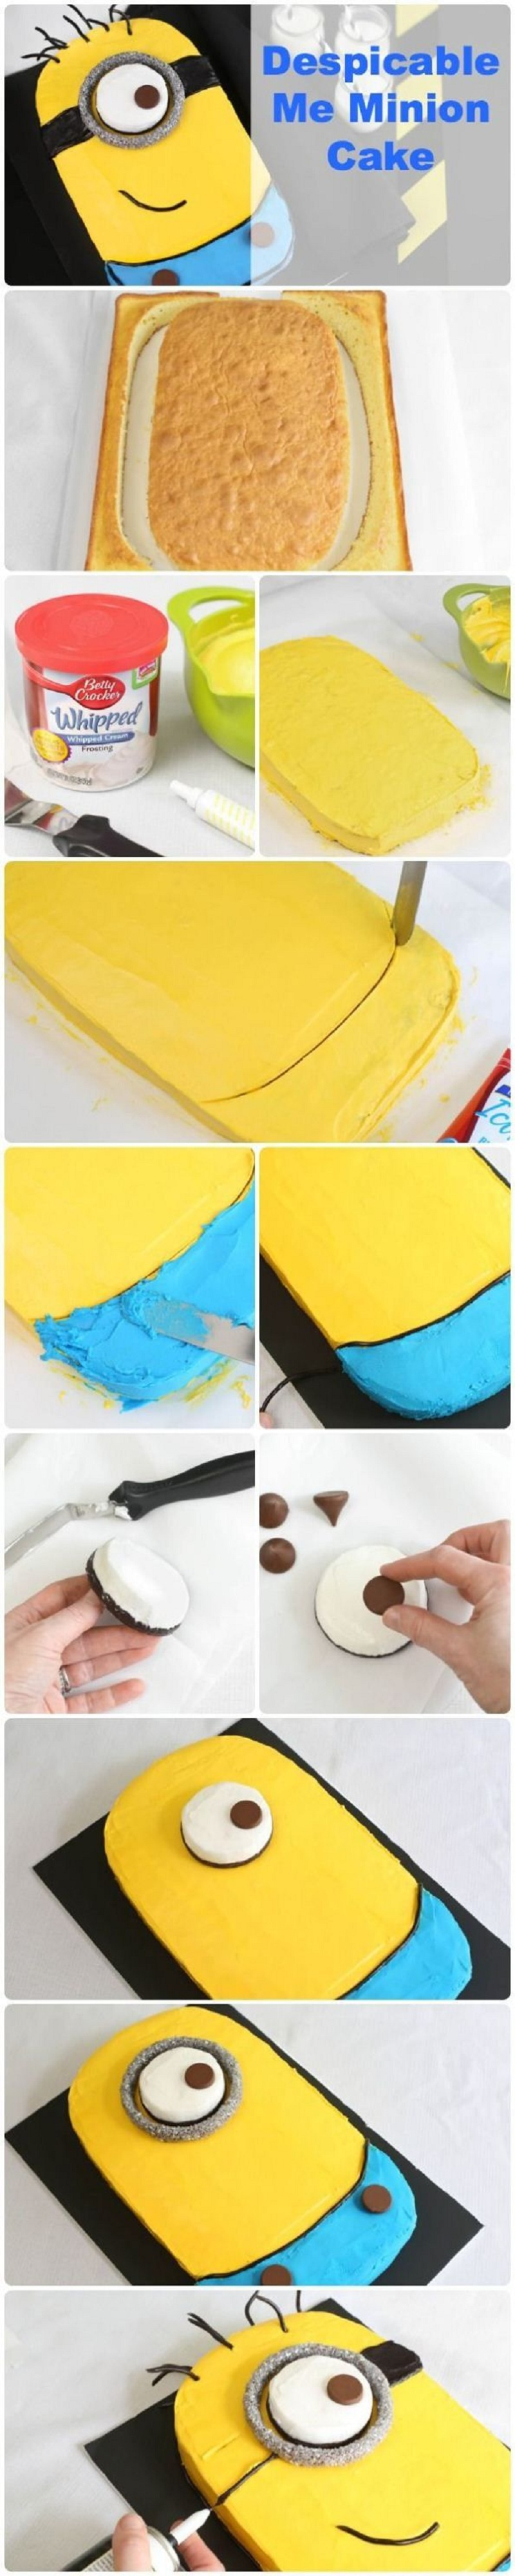 minion-sheet-cake-tutorial